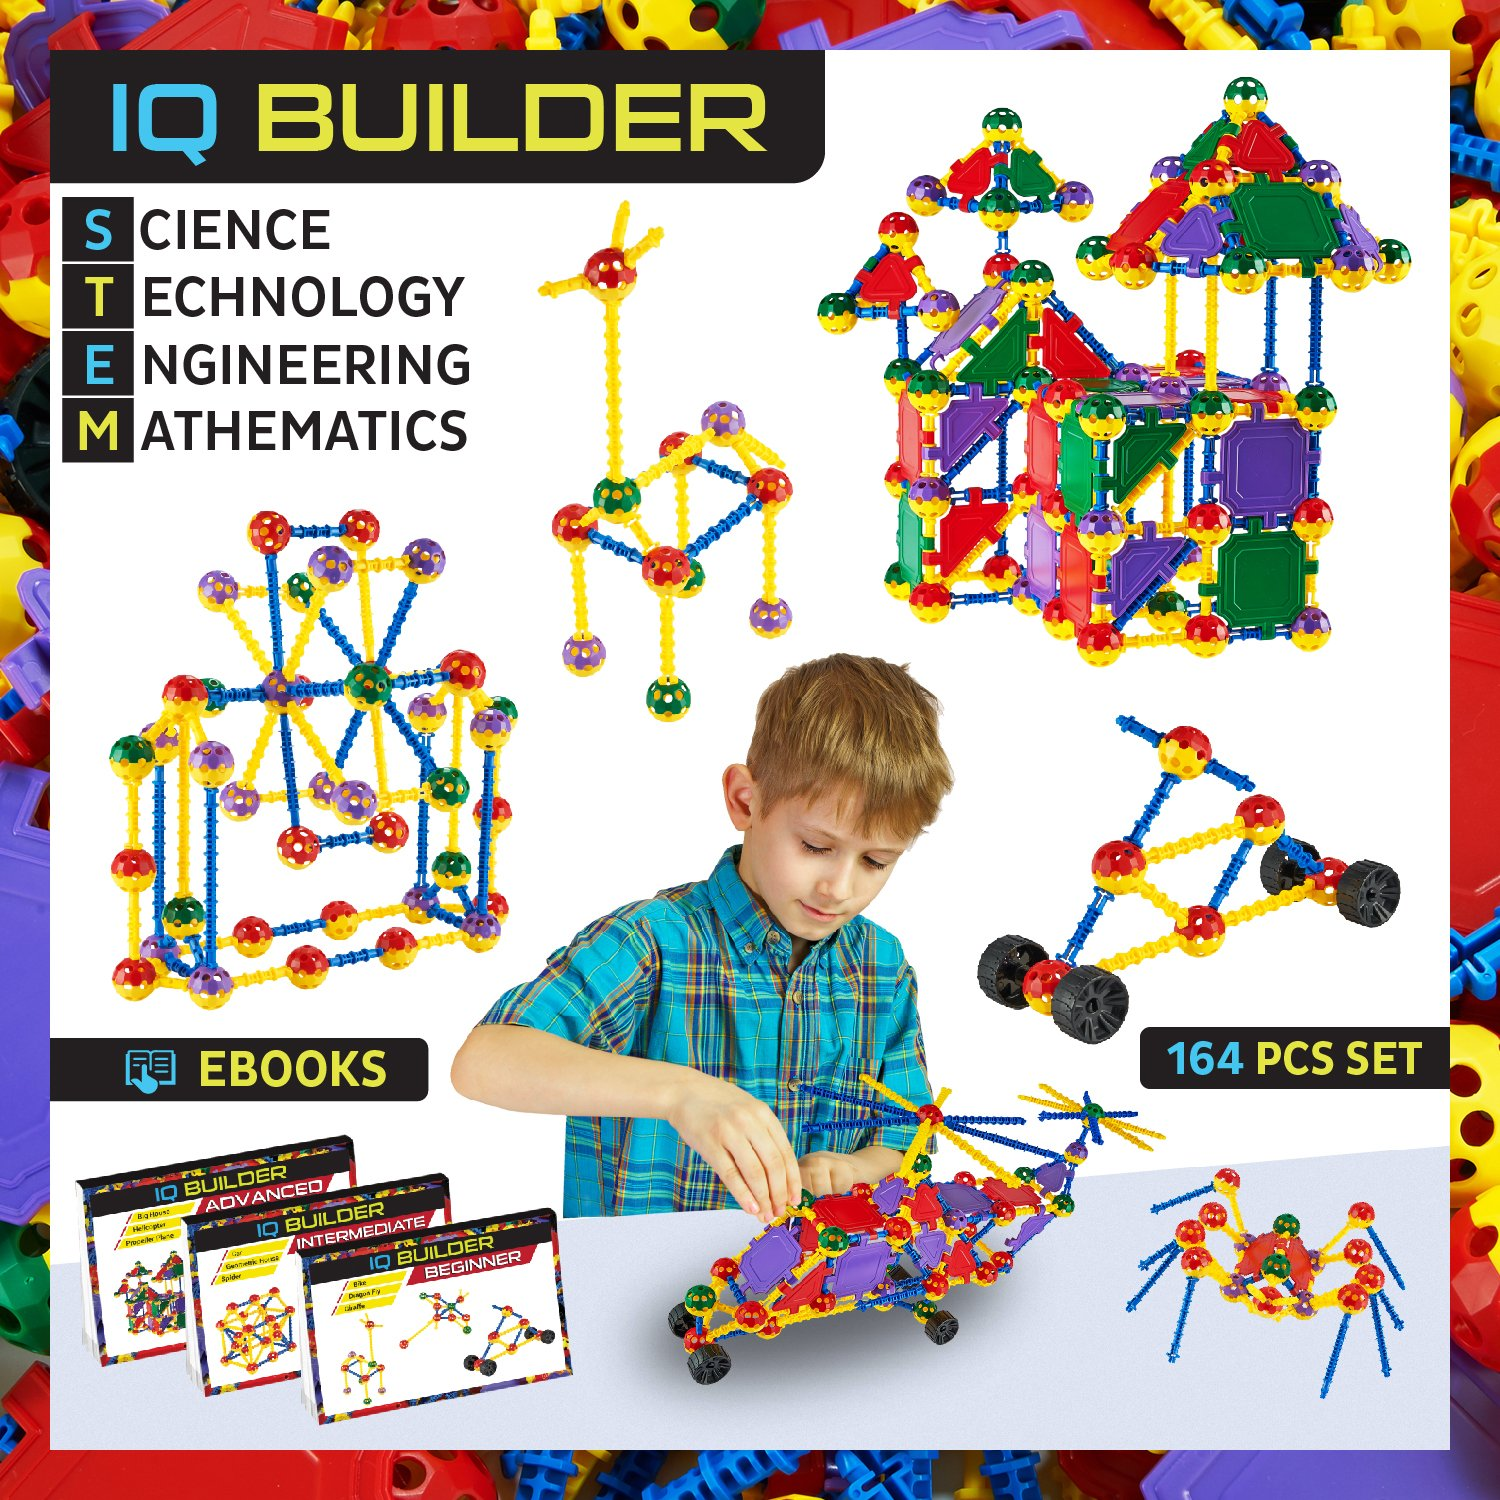 IQ BUILDER | STEM Learning Toys | Creative Construction Engineering | Fun Educational Building Blocks Toy Set for Boys and Girls Ages 5 6 7 8 9 10 Year Old + | Best Toy Gift for Kids | Activity Game Review